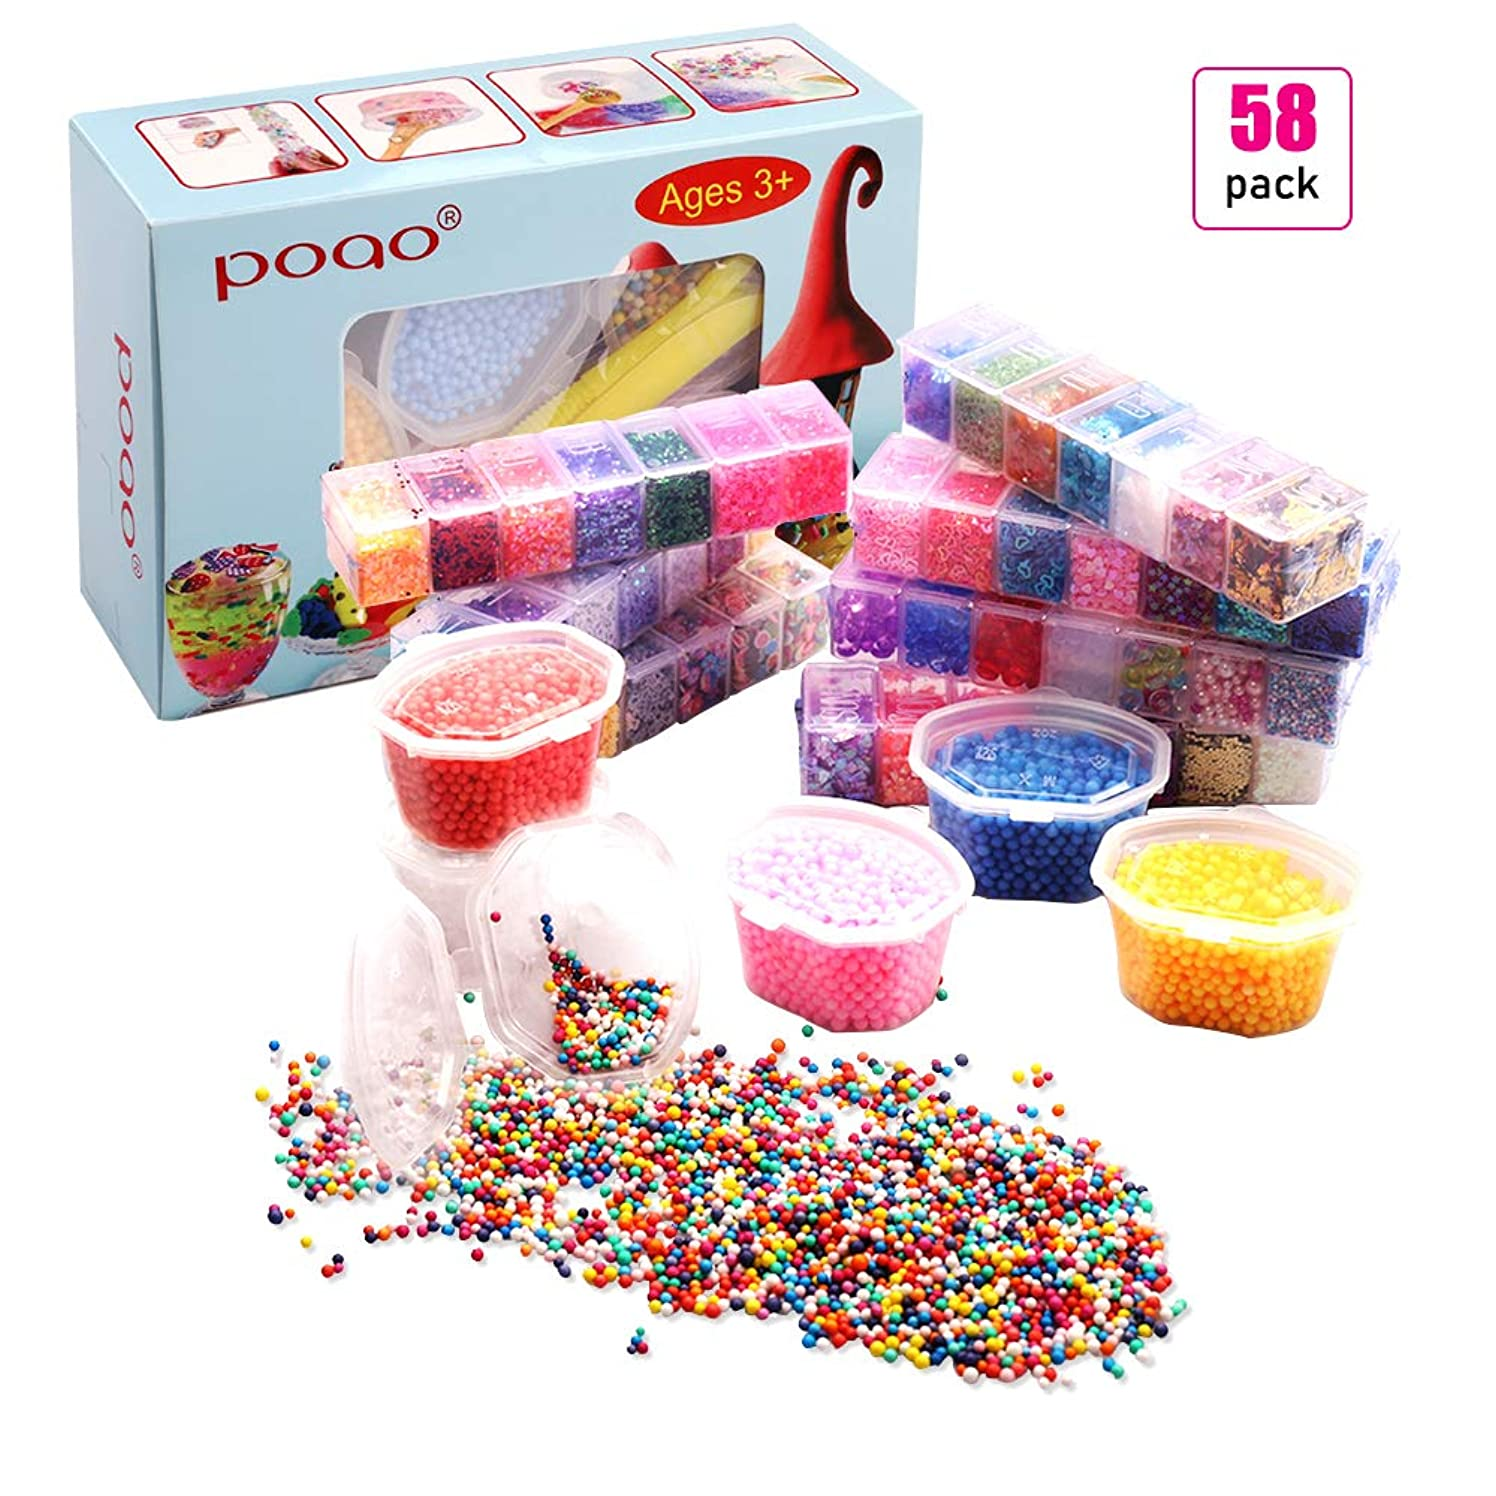 Slime Supplies Kit, 58 Pack Slime Beads Include Foam Balls, Fishbowl Beads, Glitter, Fruit Slices, Rainbow Pearls, Sugar Paper, Slime Tools for Making Art DIY Craft - Make Your Party Decoration (58)